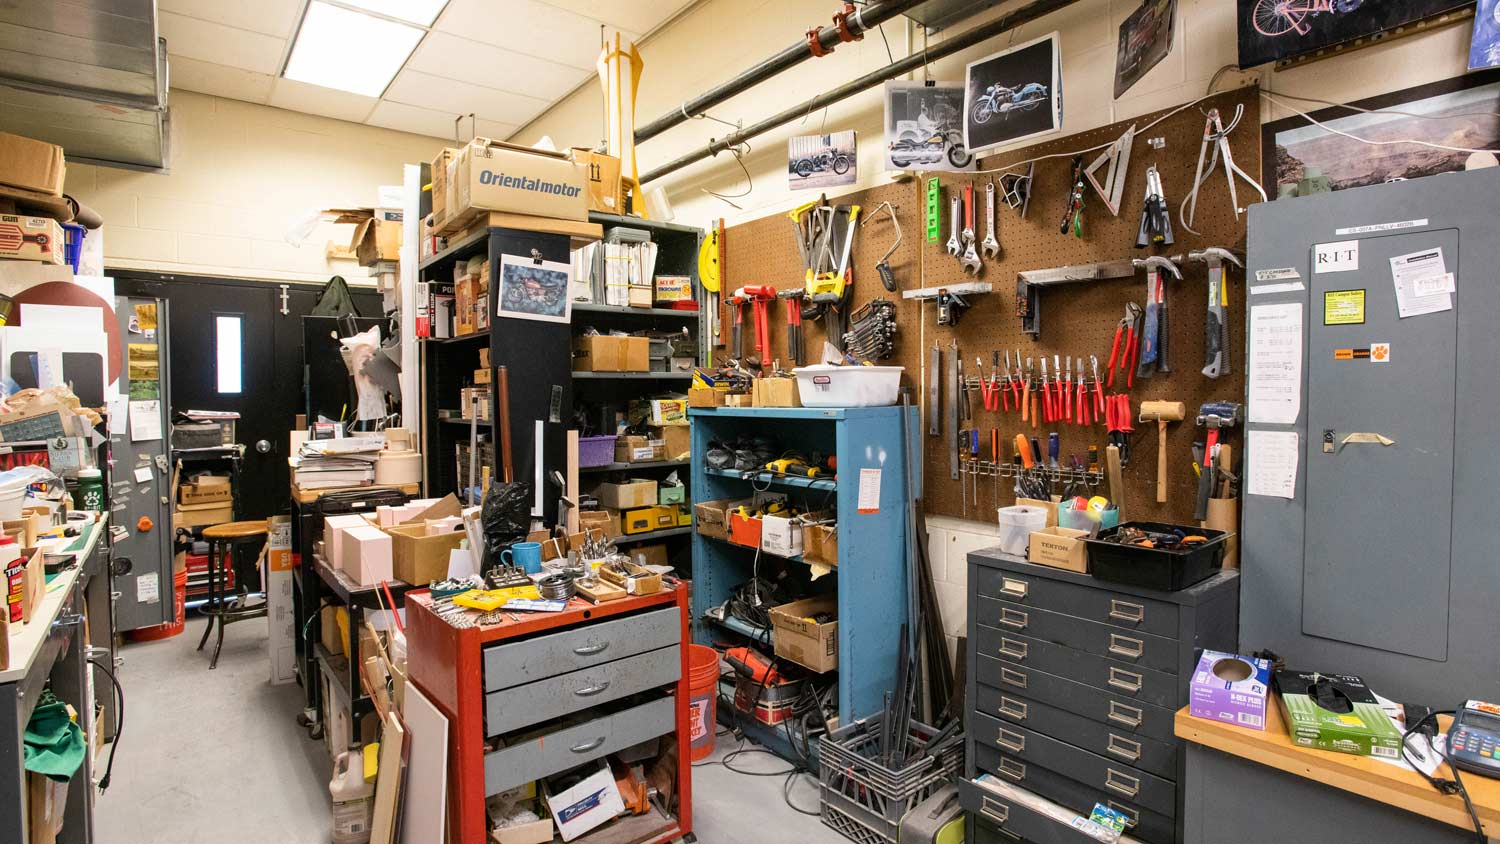 Workshop with a large amount of tools